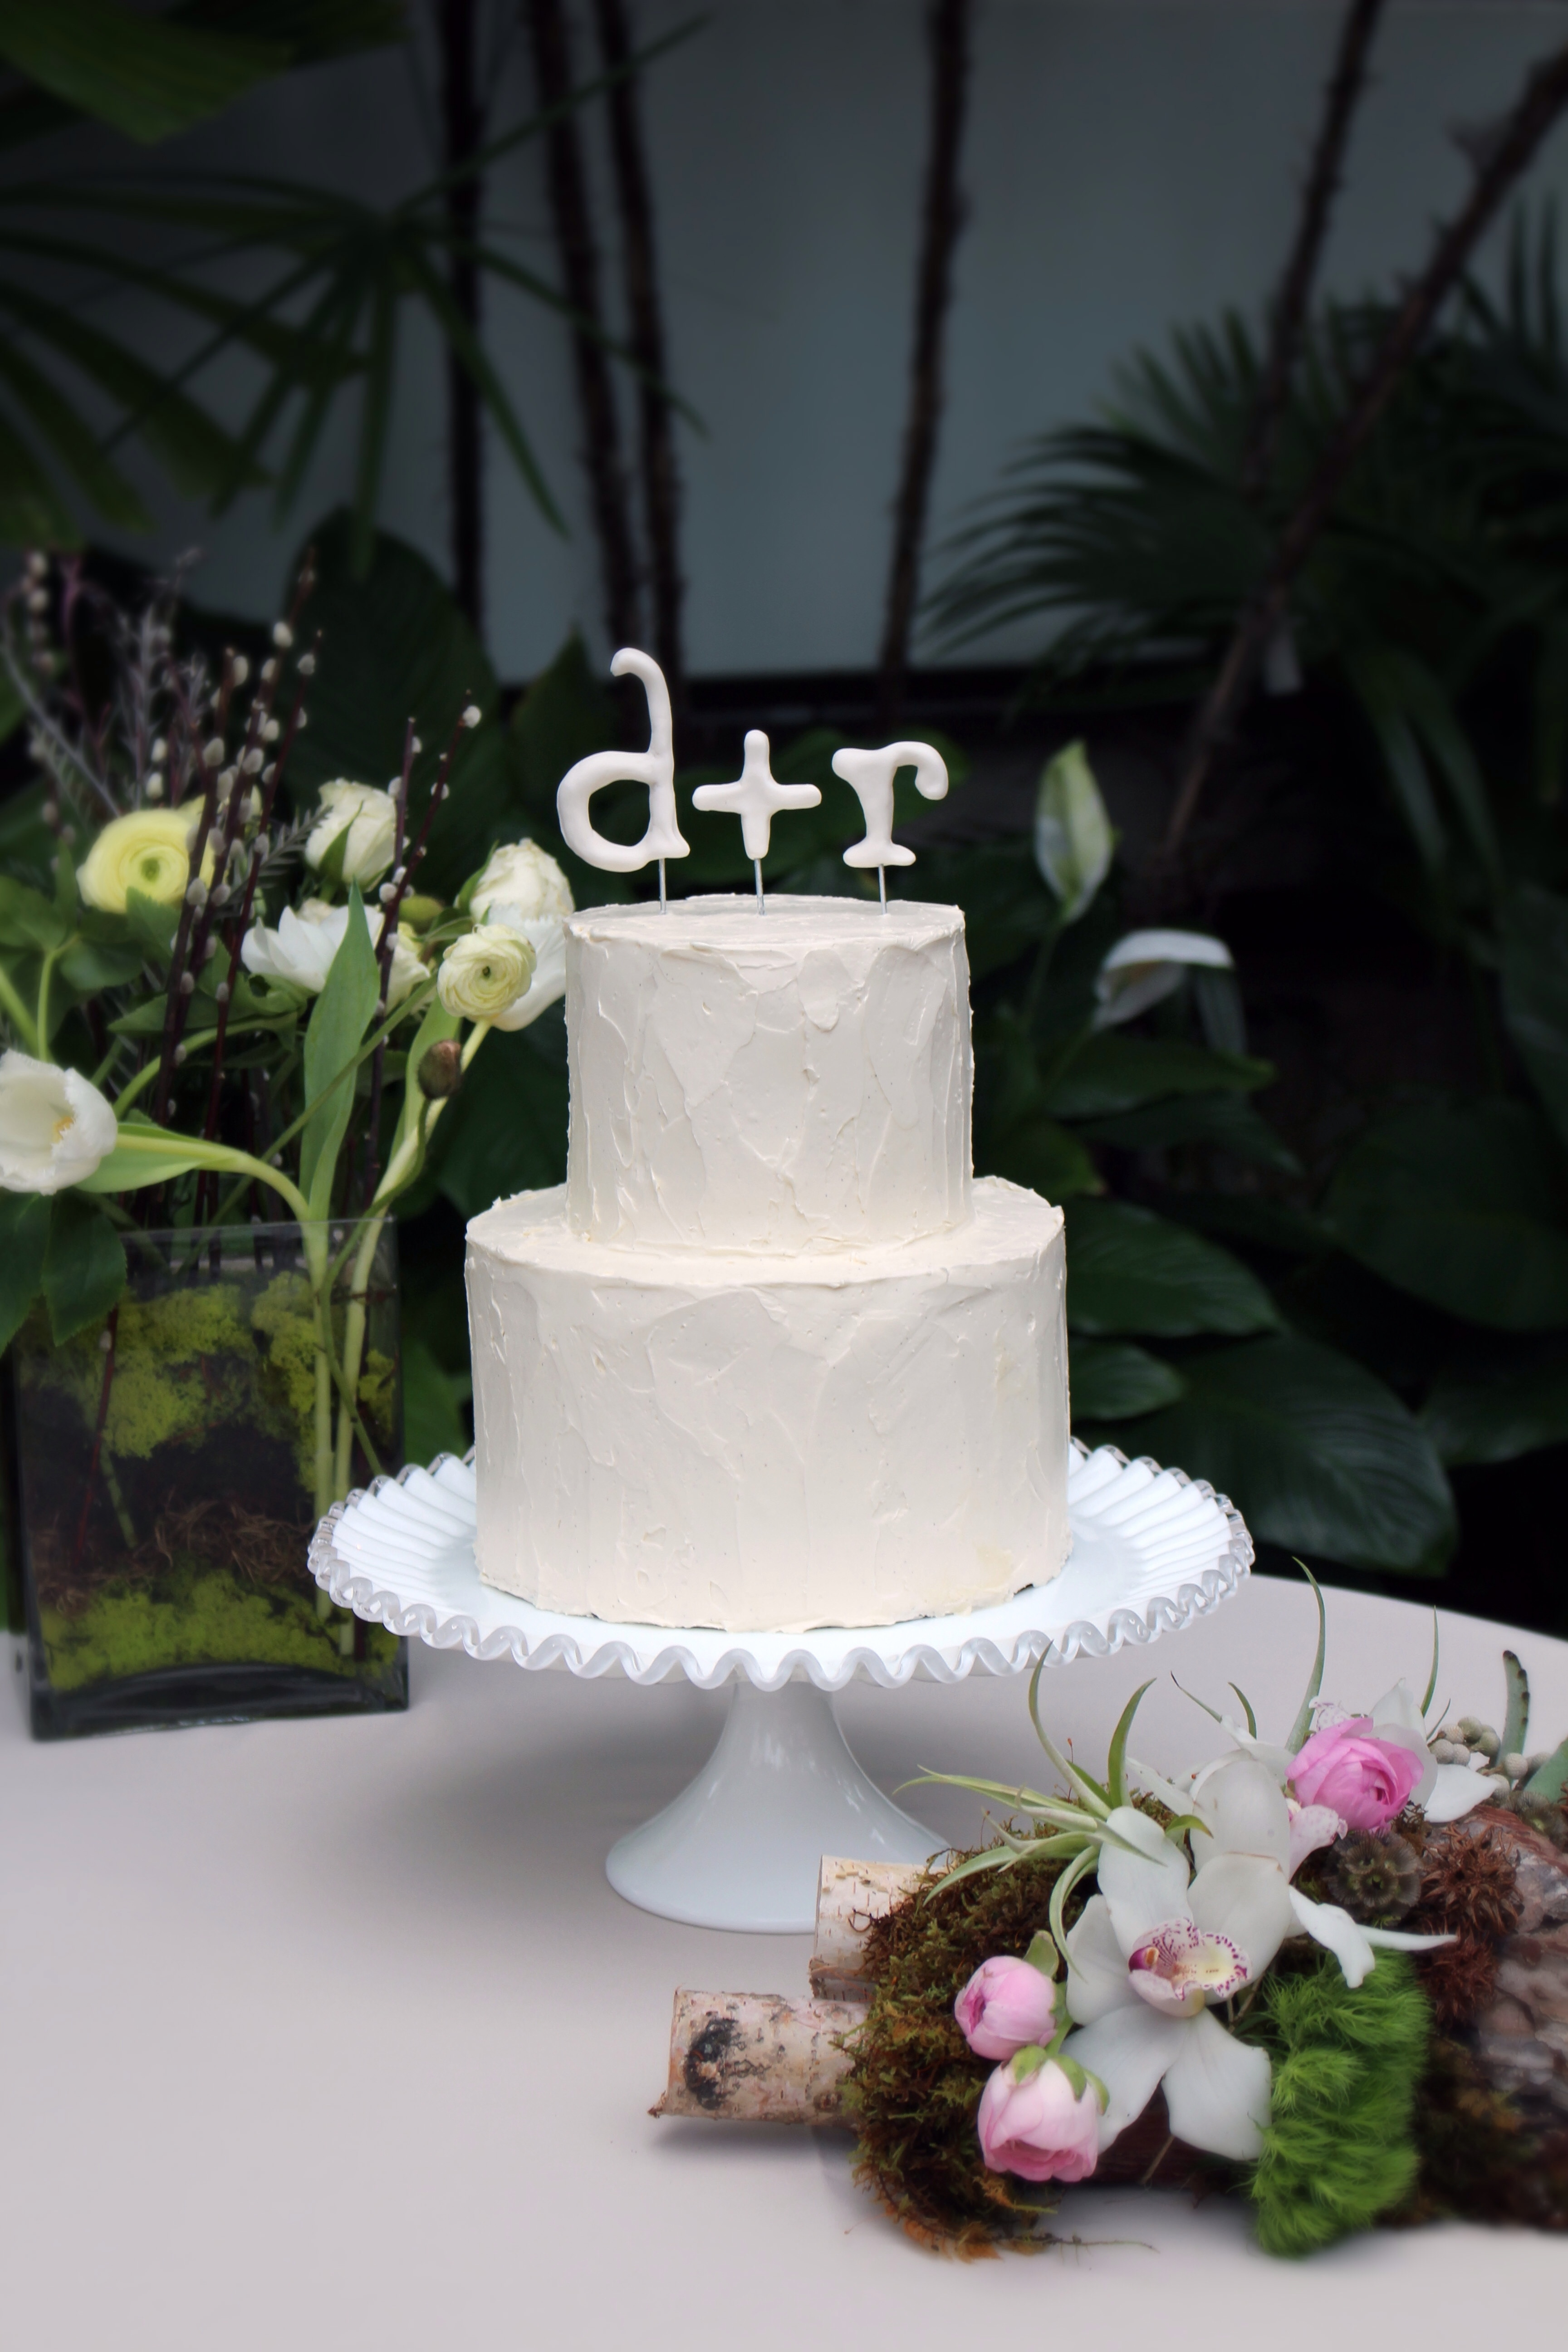 Clean And Simple Buttercream Wedding Cake With Gum Paste Toppers